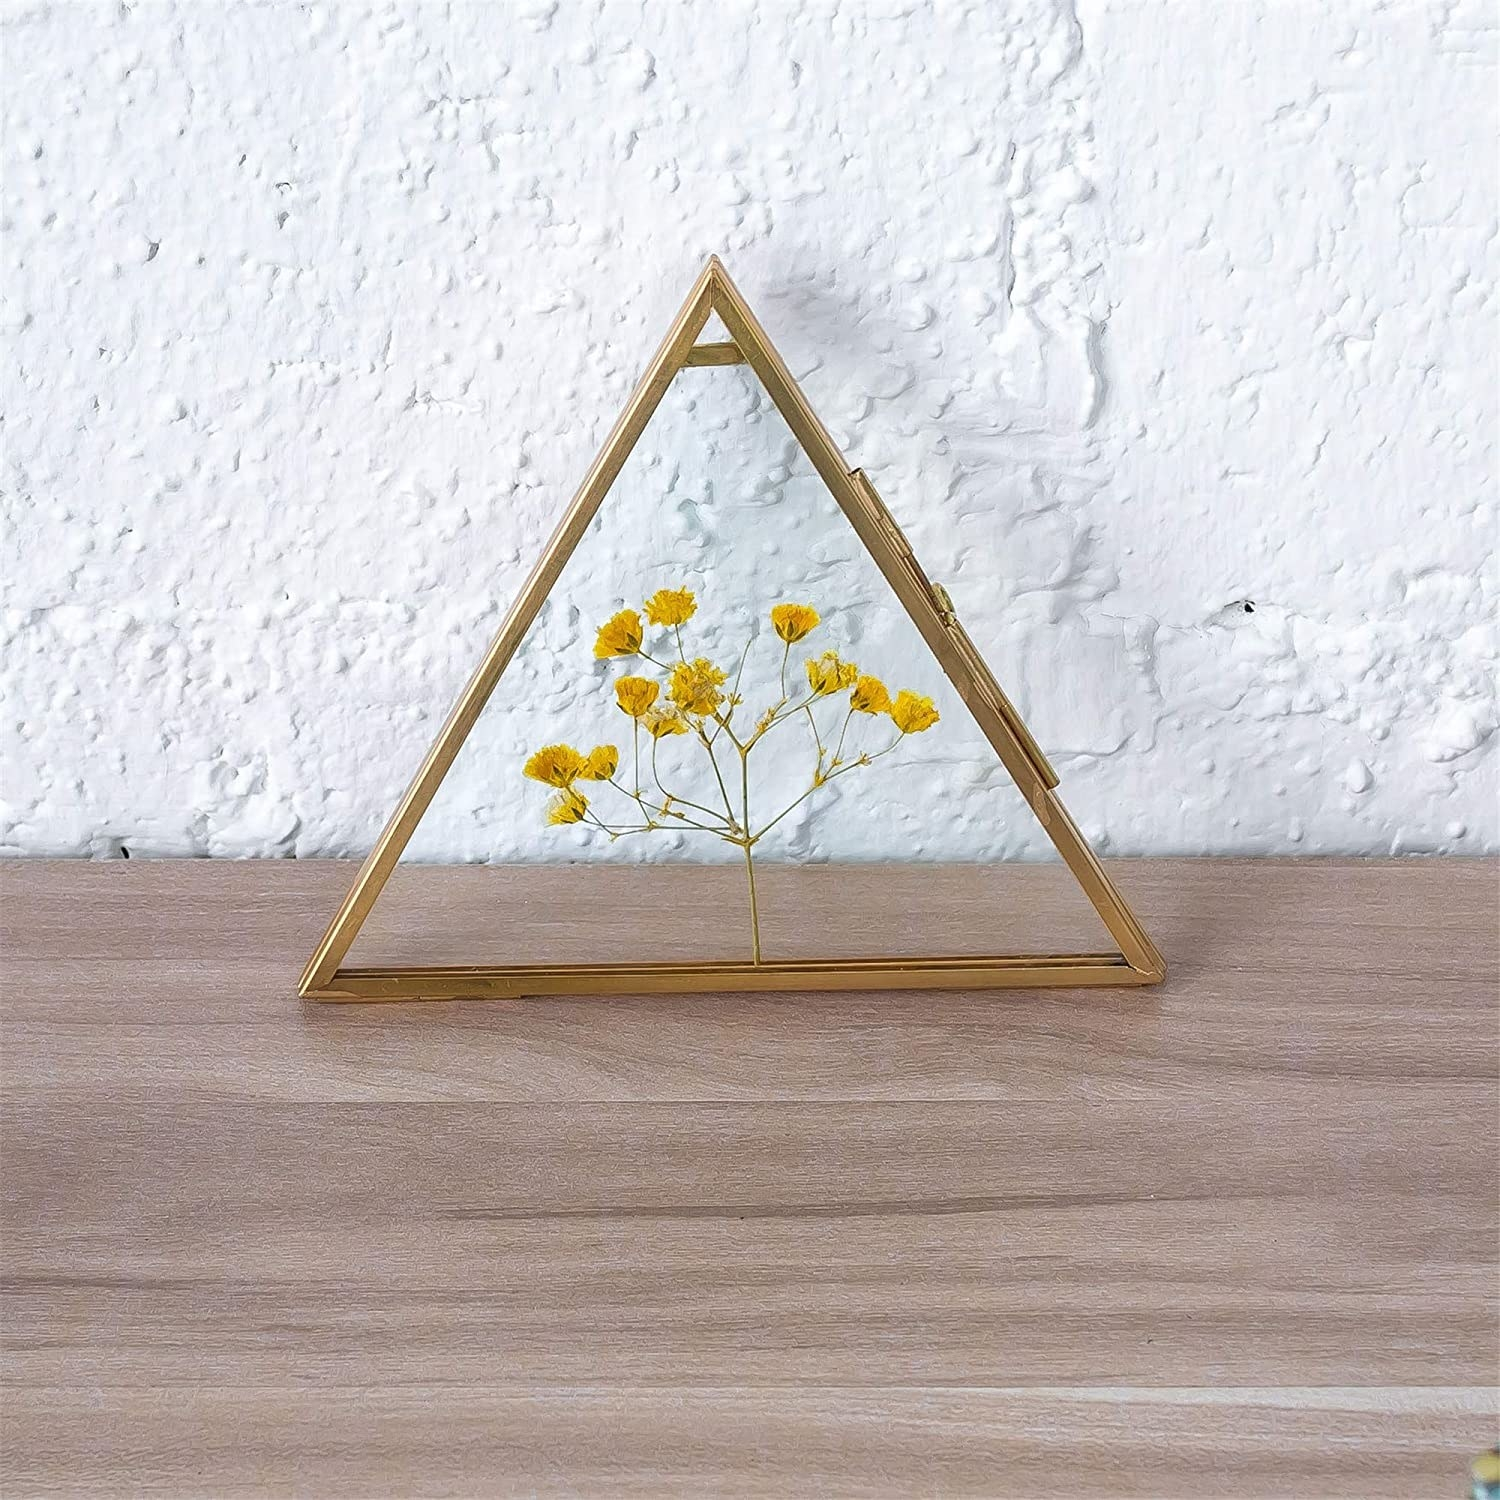 Triangular glass frame with brass edges and hinges